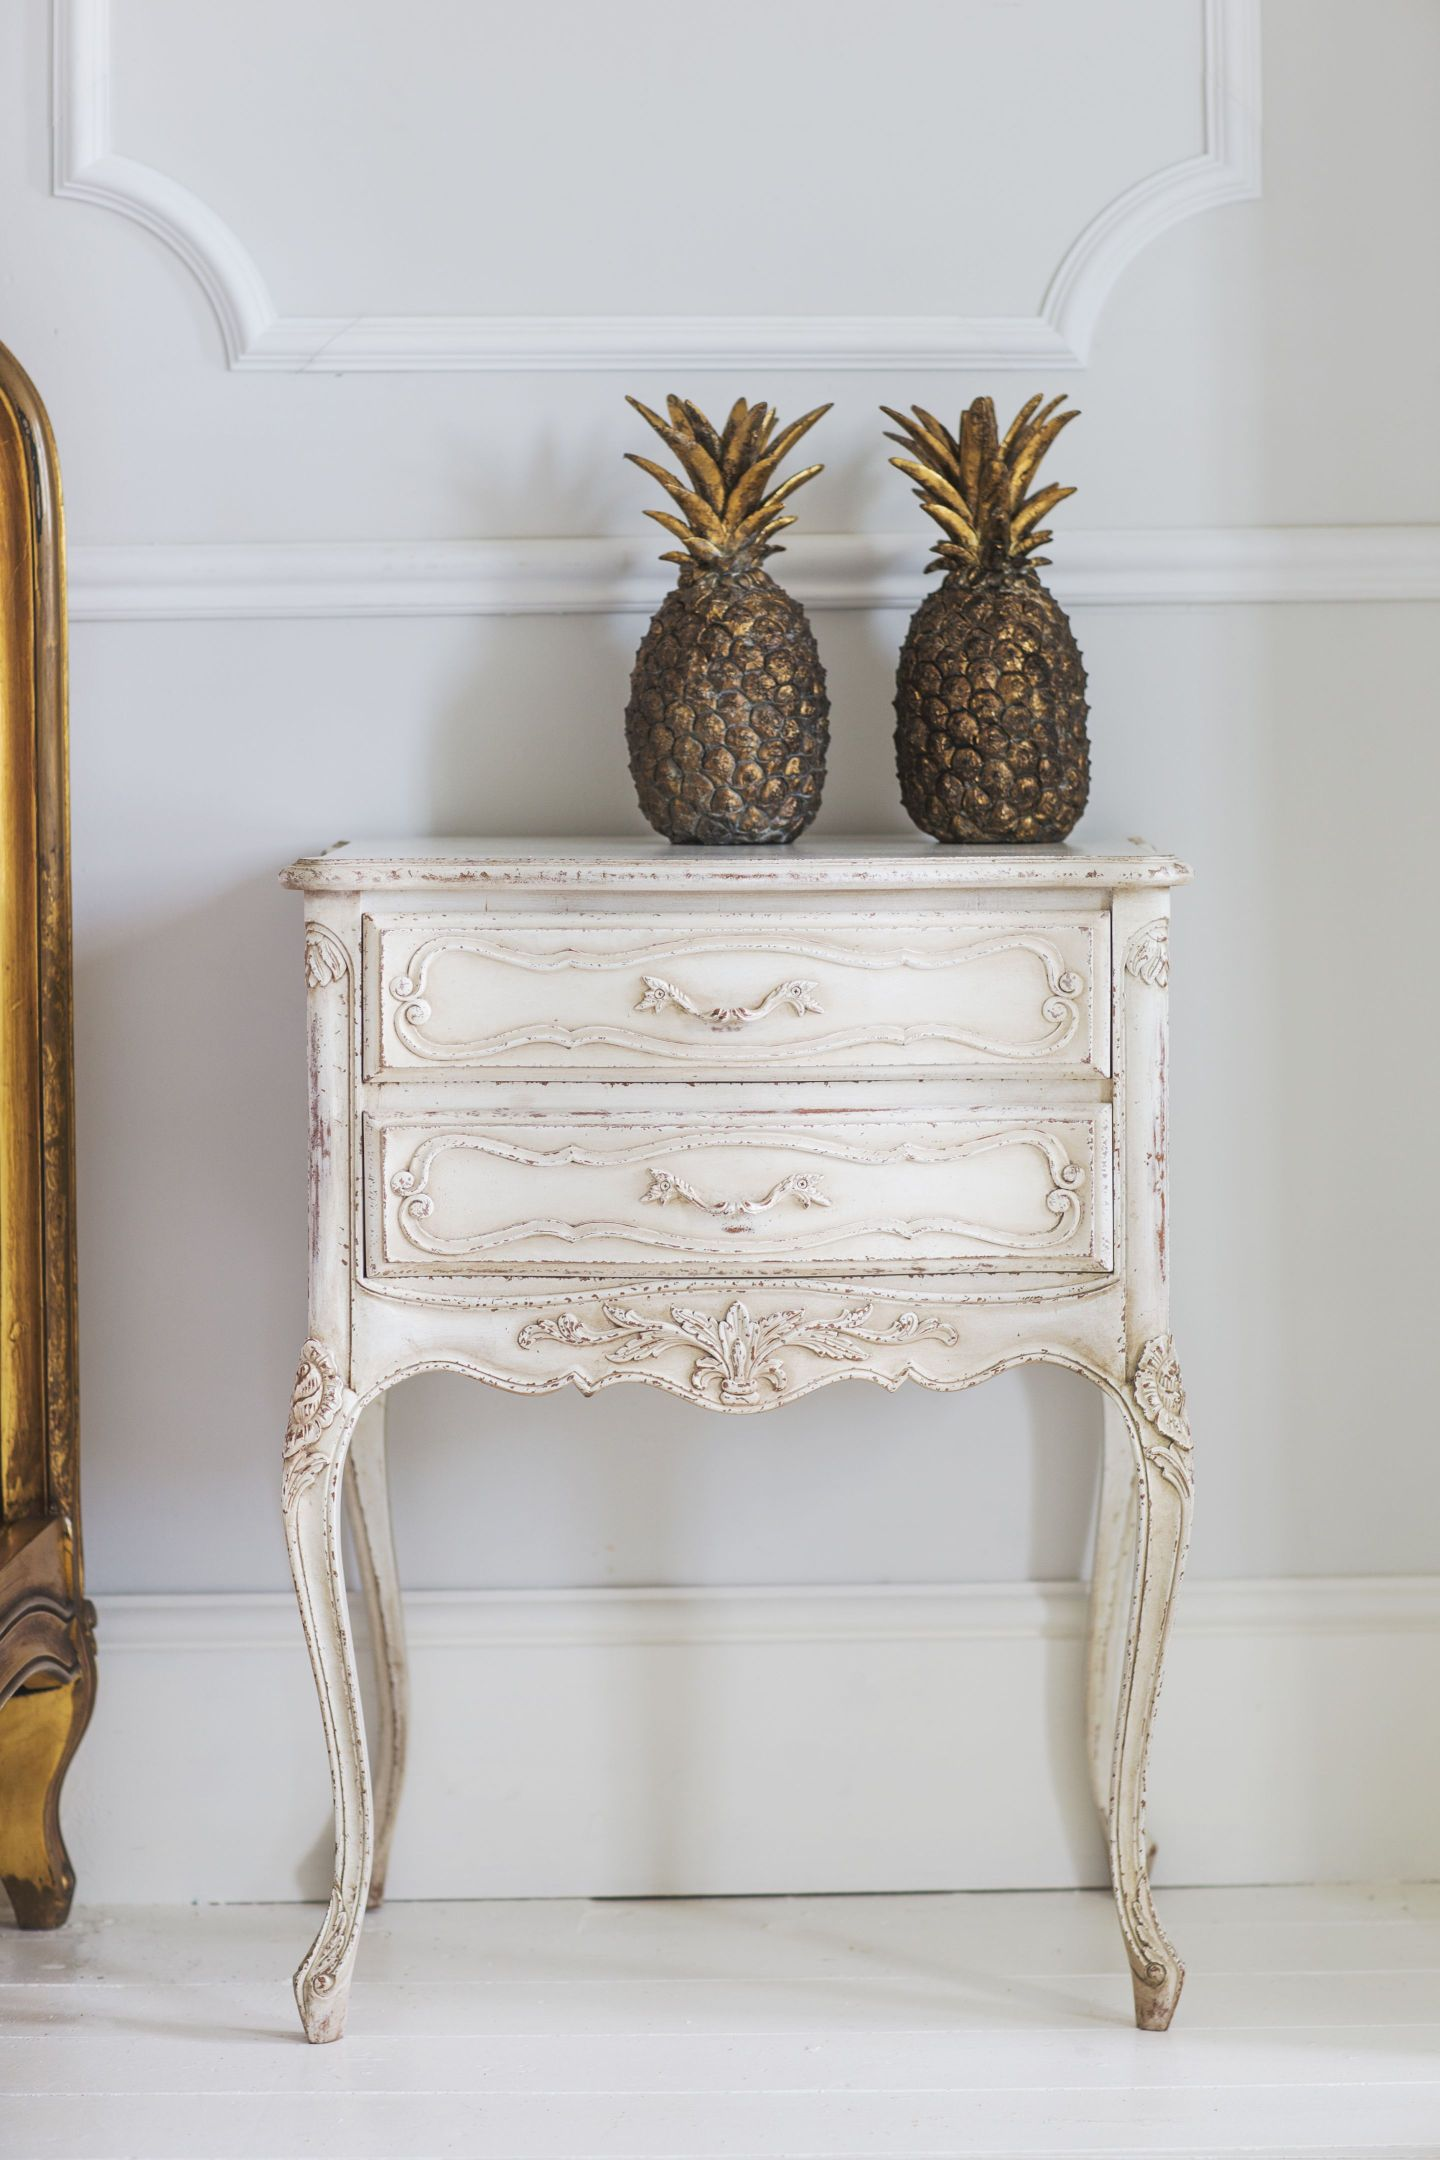 The-French-Bedroom-Co-Pair-of-Golden-Pineapples-Lifestyle-1817625-1-1440x2160 Pineapple Decor: Tips for Decorating Your Home with Southern Hospitality